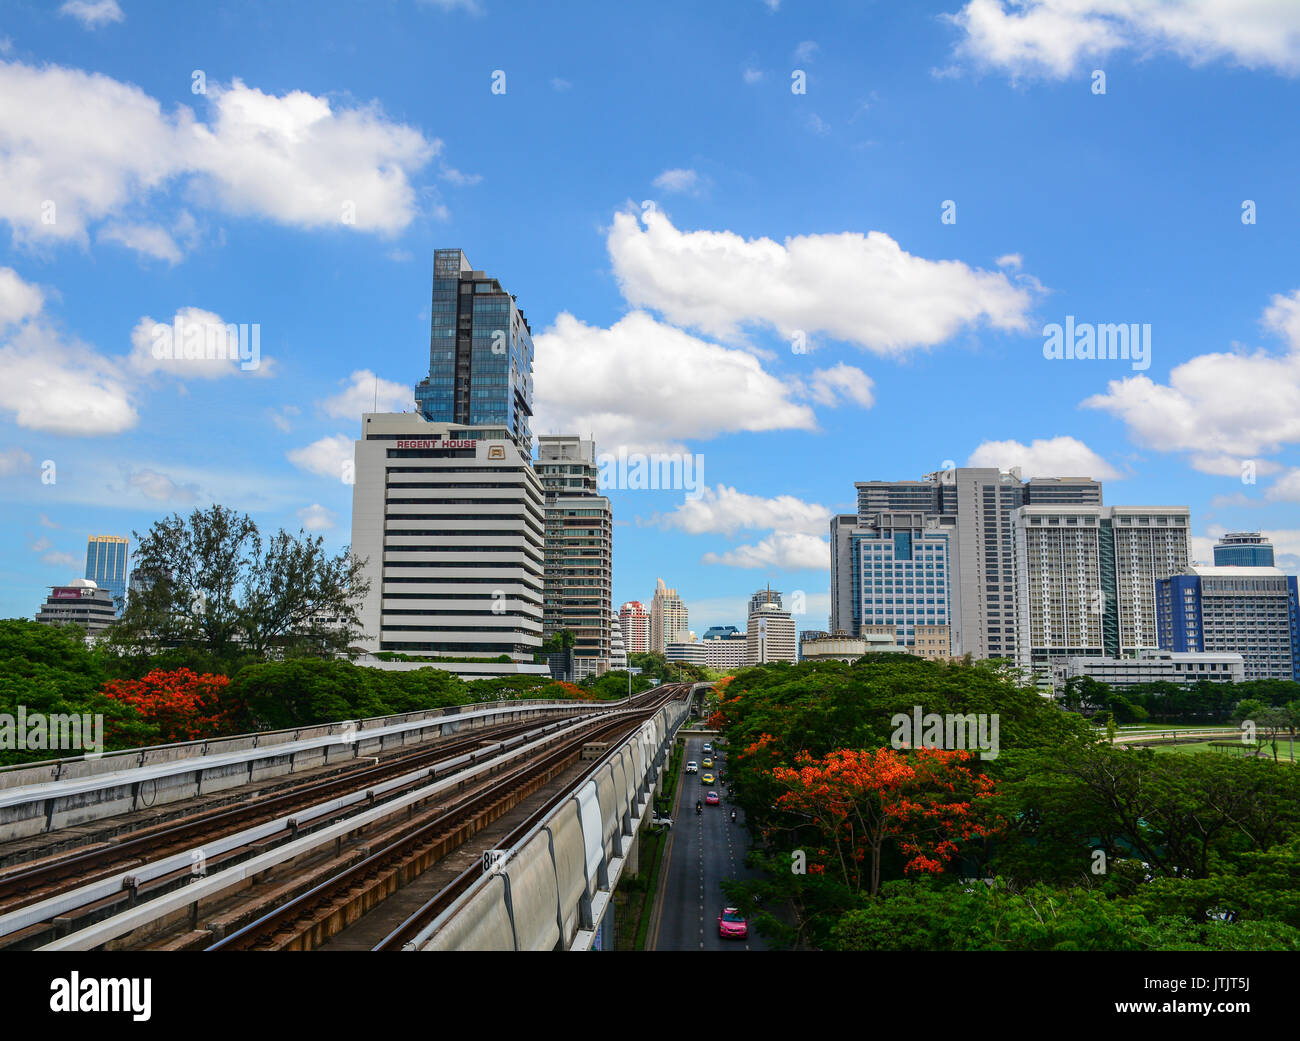 What to see and Where to go in Bangkok City | Sightseeing